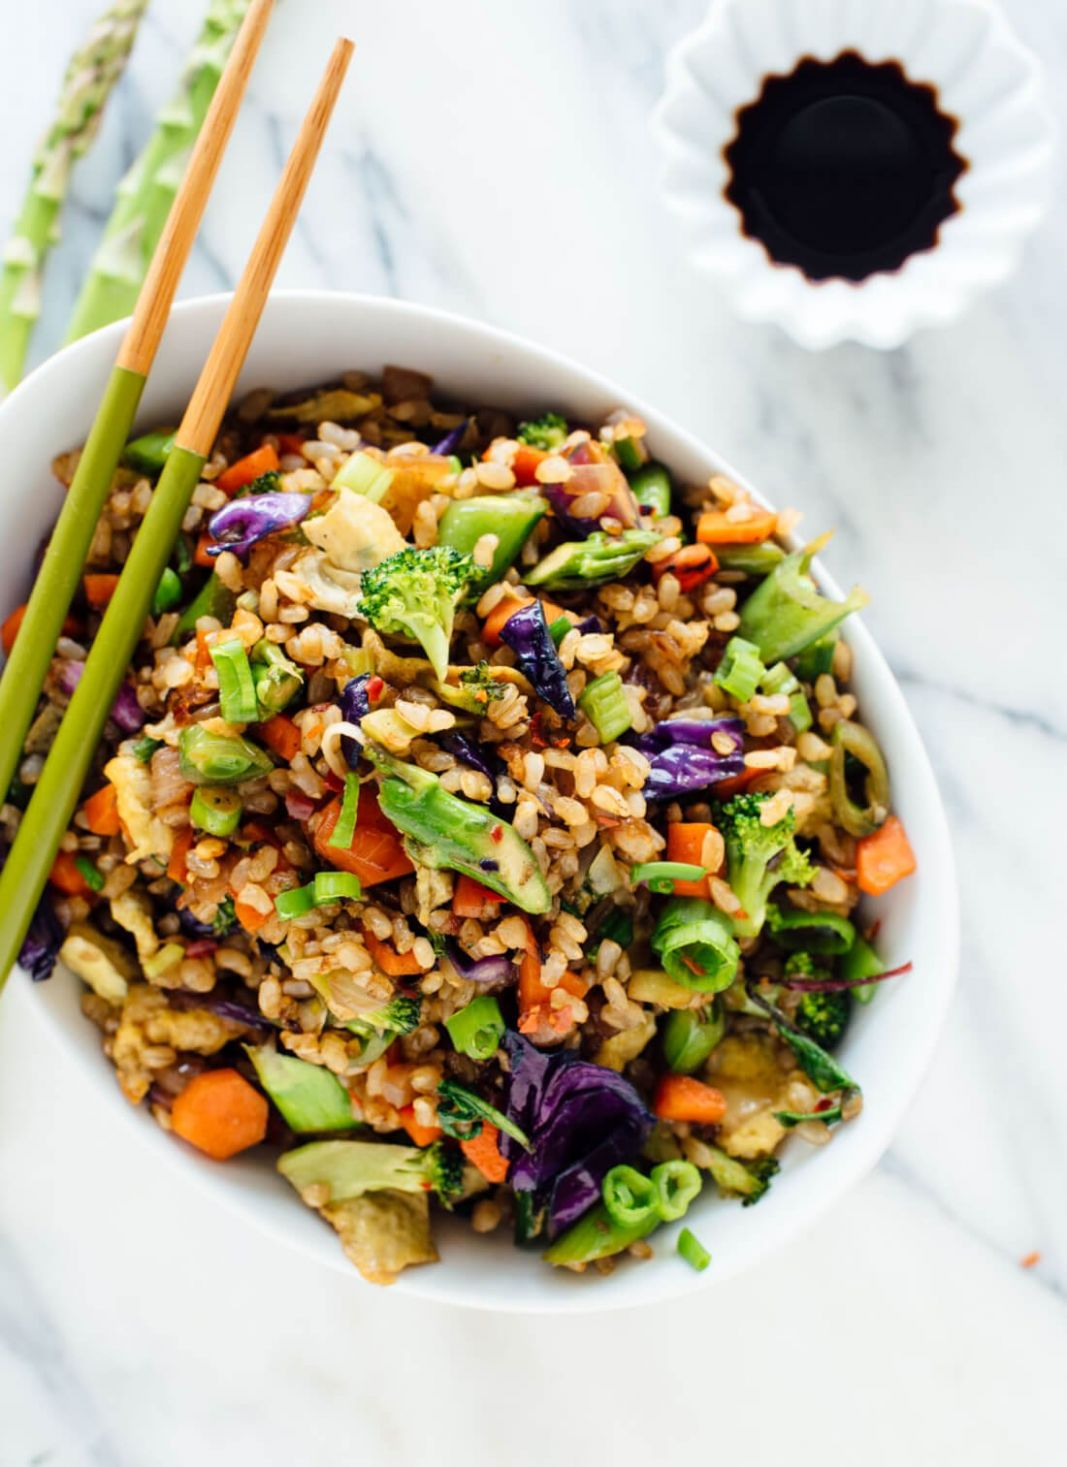 Extra Vegetable Fried Rice - Vegetarian Recipes You Can Add Meat To